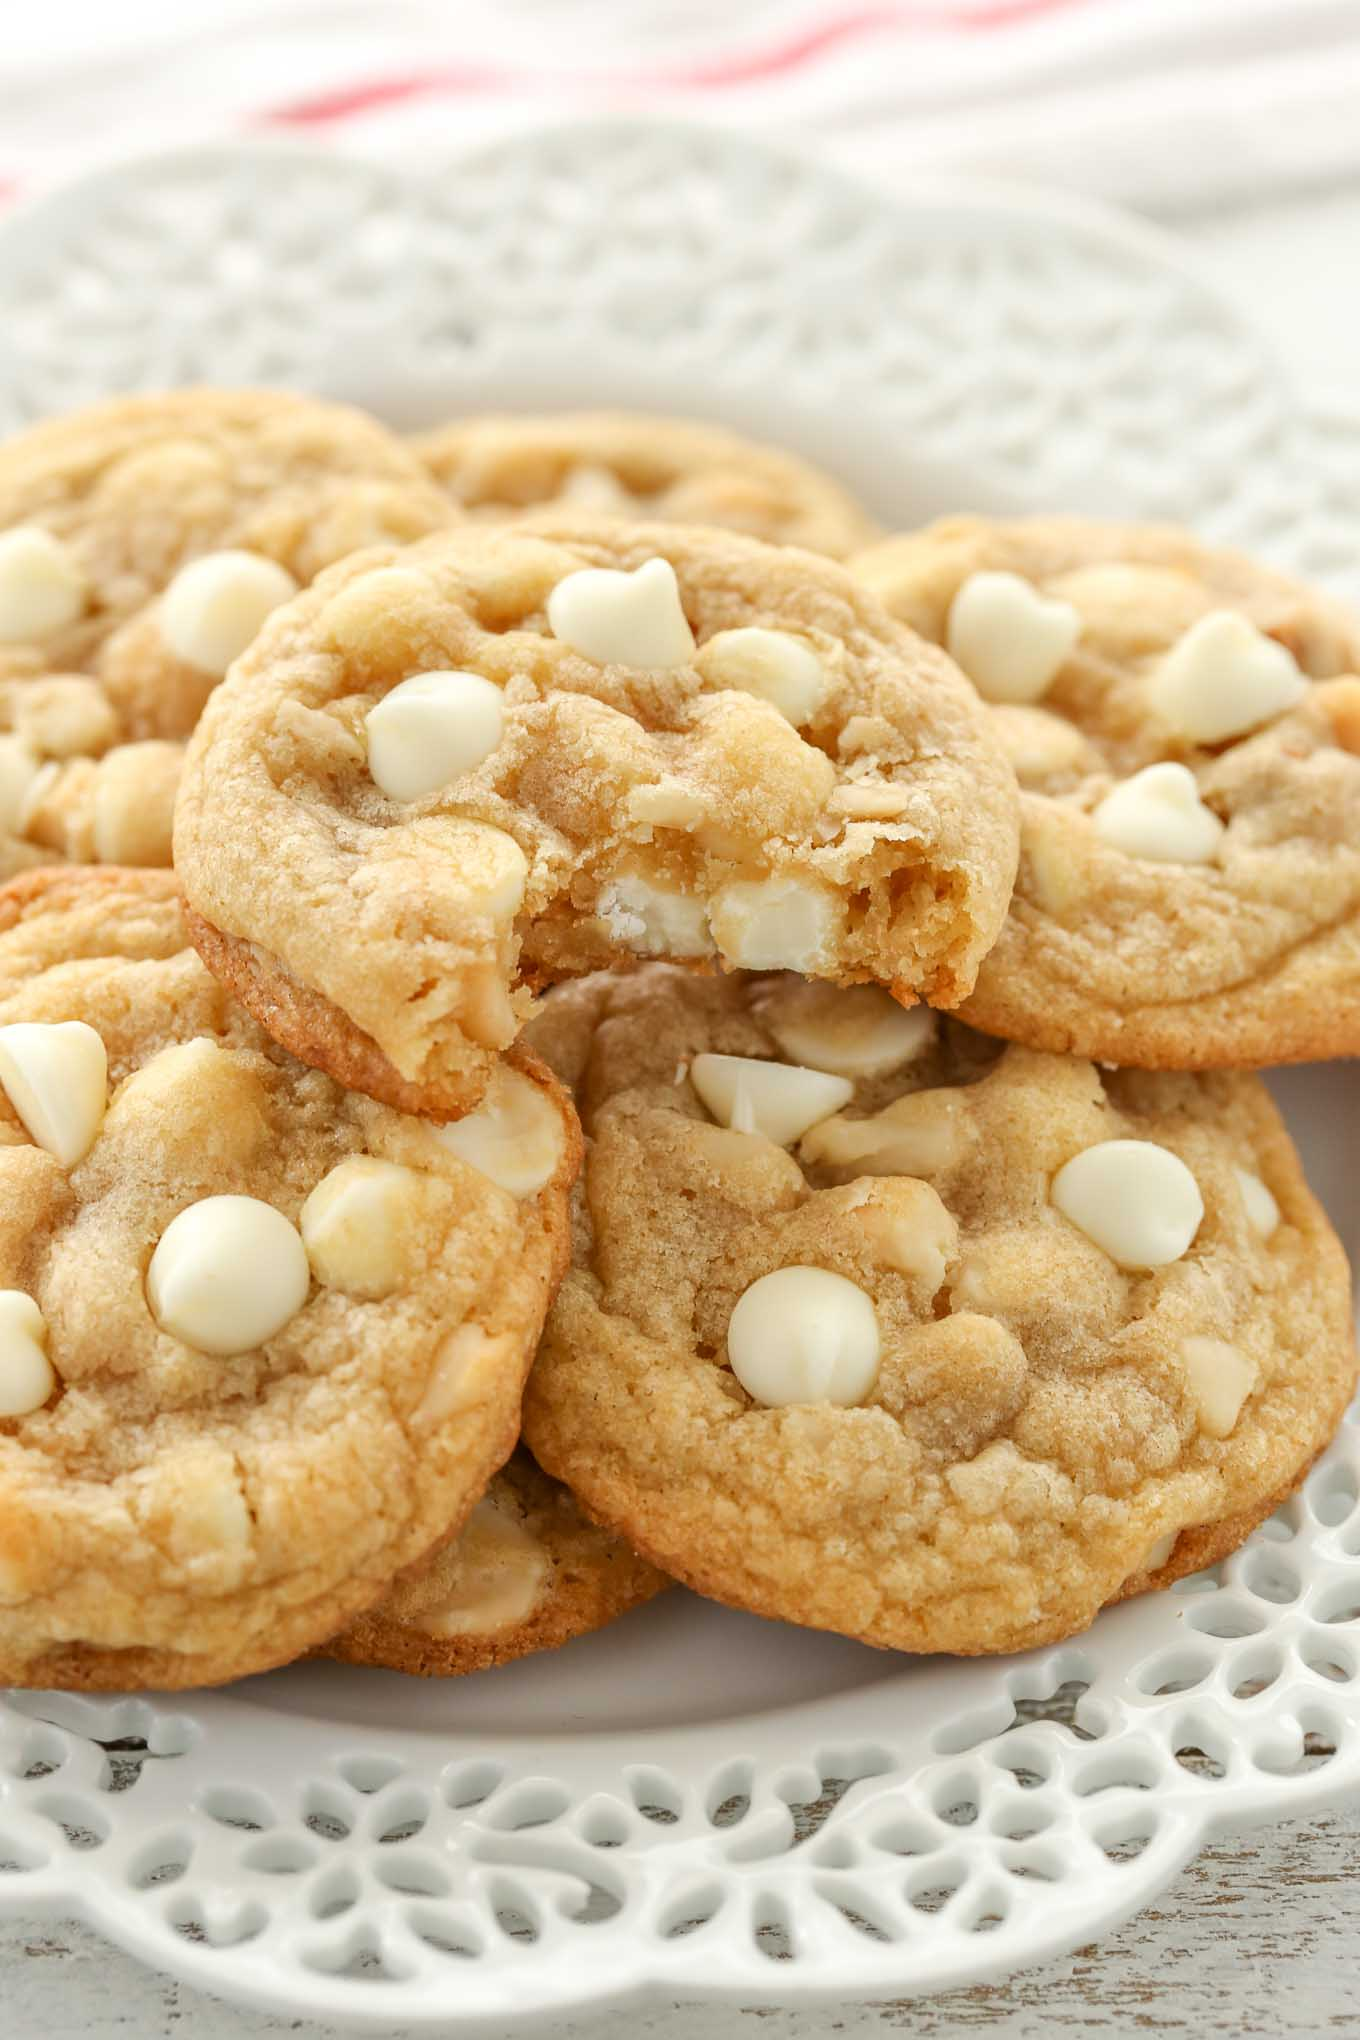 These White Chocolate Macadamia Nut Cookies have slightly crisp edges with soft and chewy centers. Loaded with extra white chocolate chips and macadamia nuts, these are guaranteed to be your new favorite cookie!